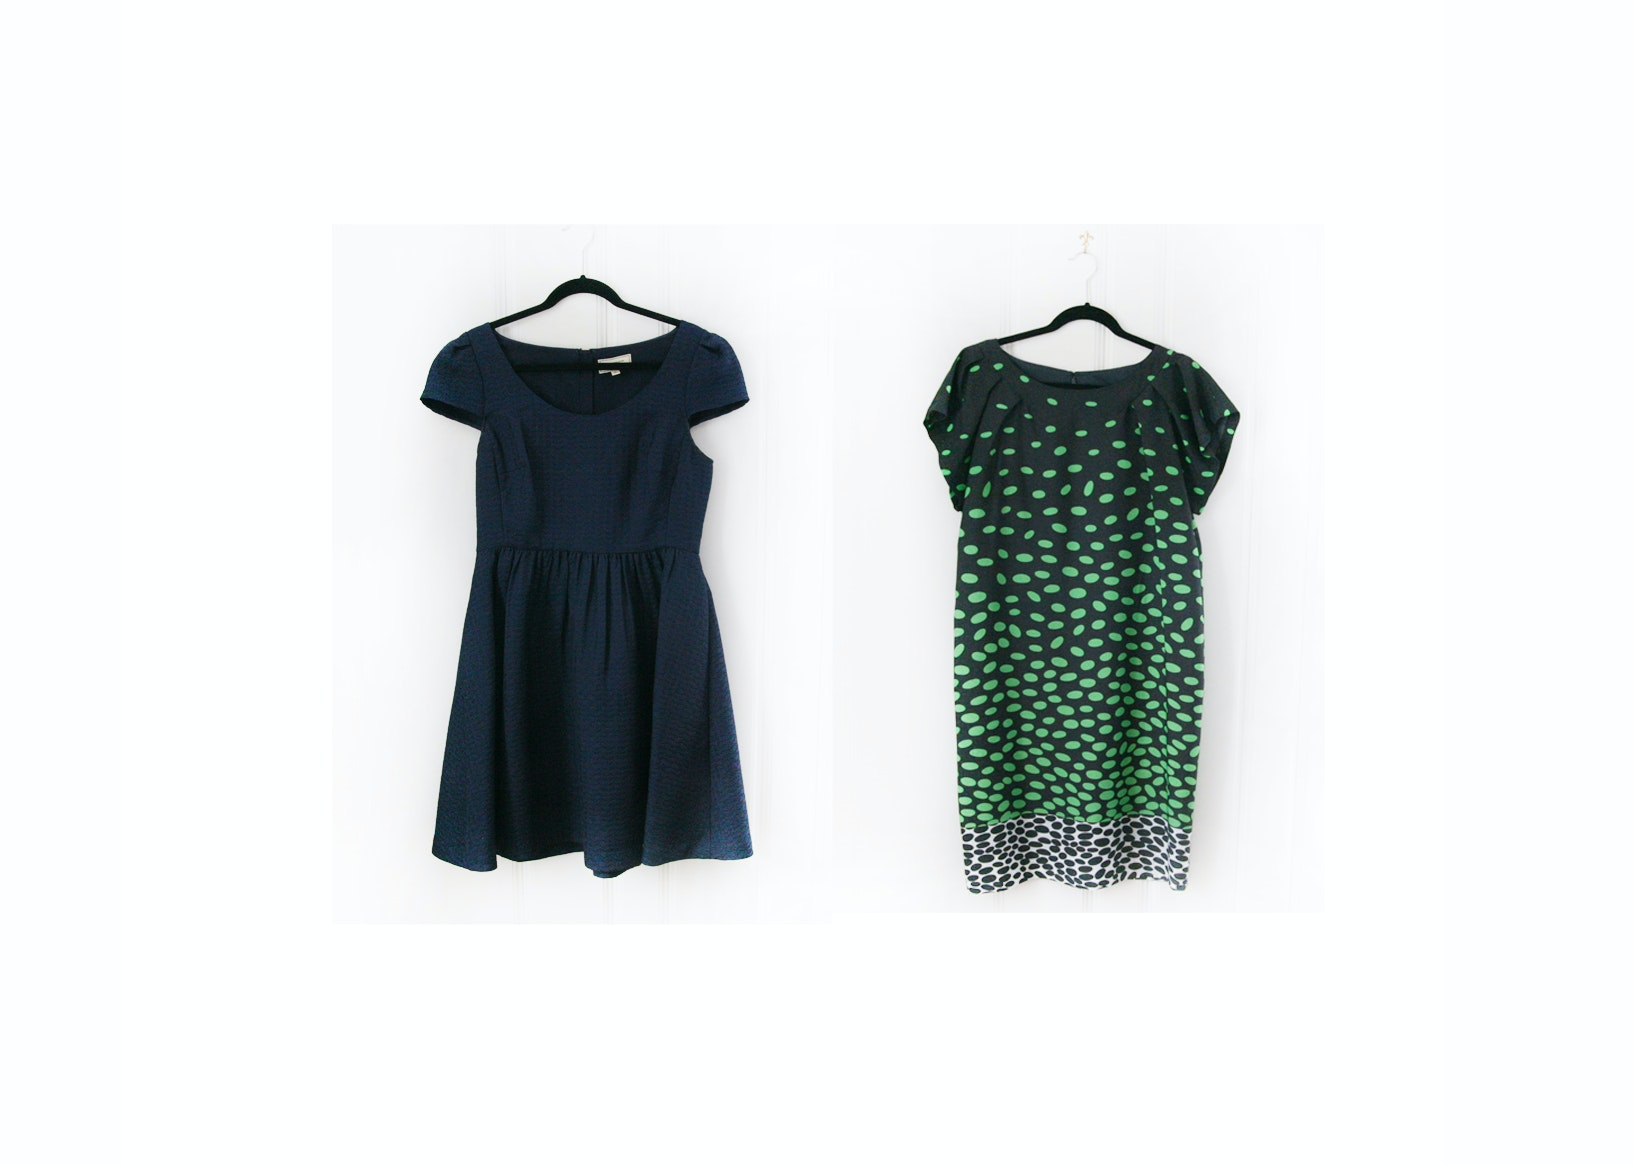 Adrianna Papell and Moulinette Soeurs Dresses